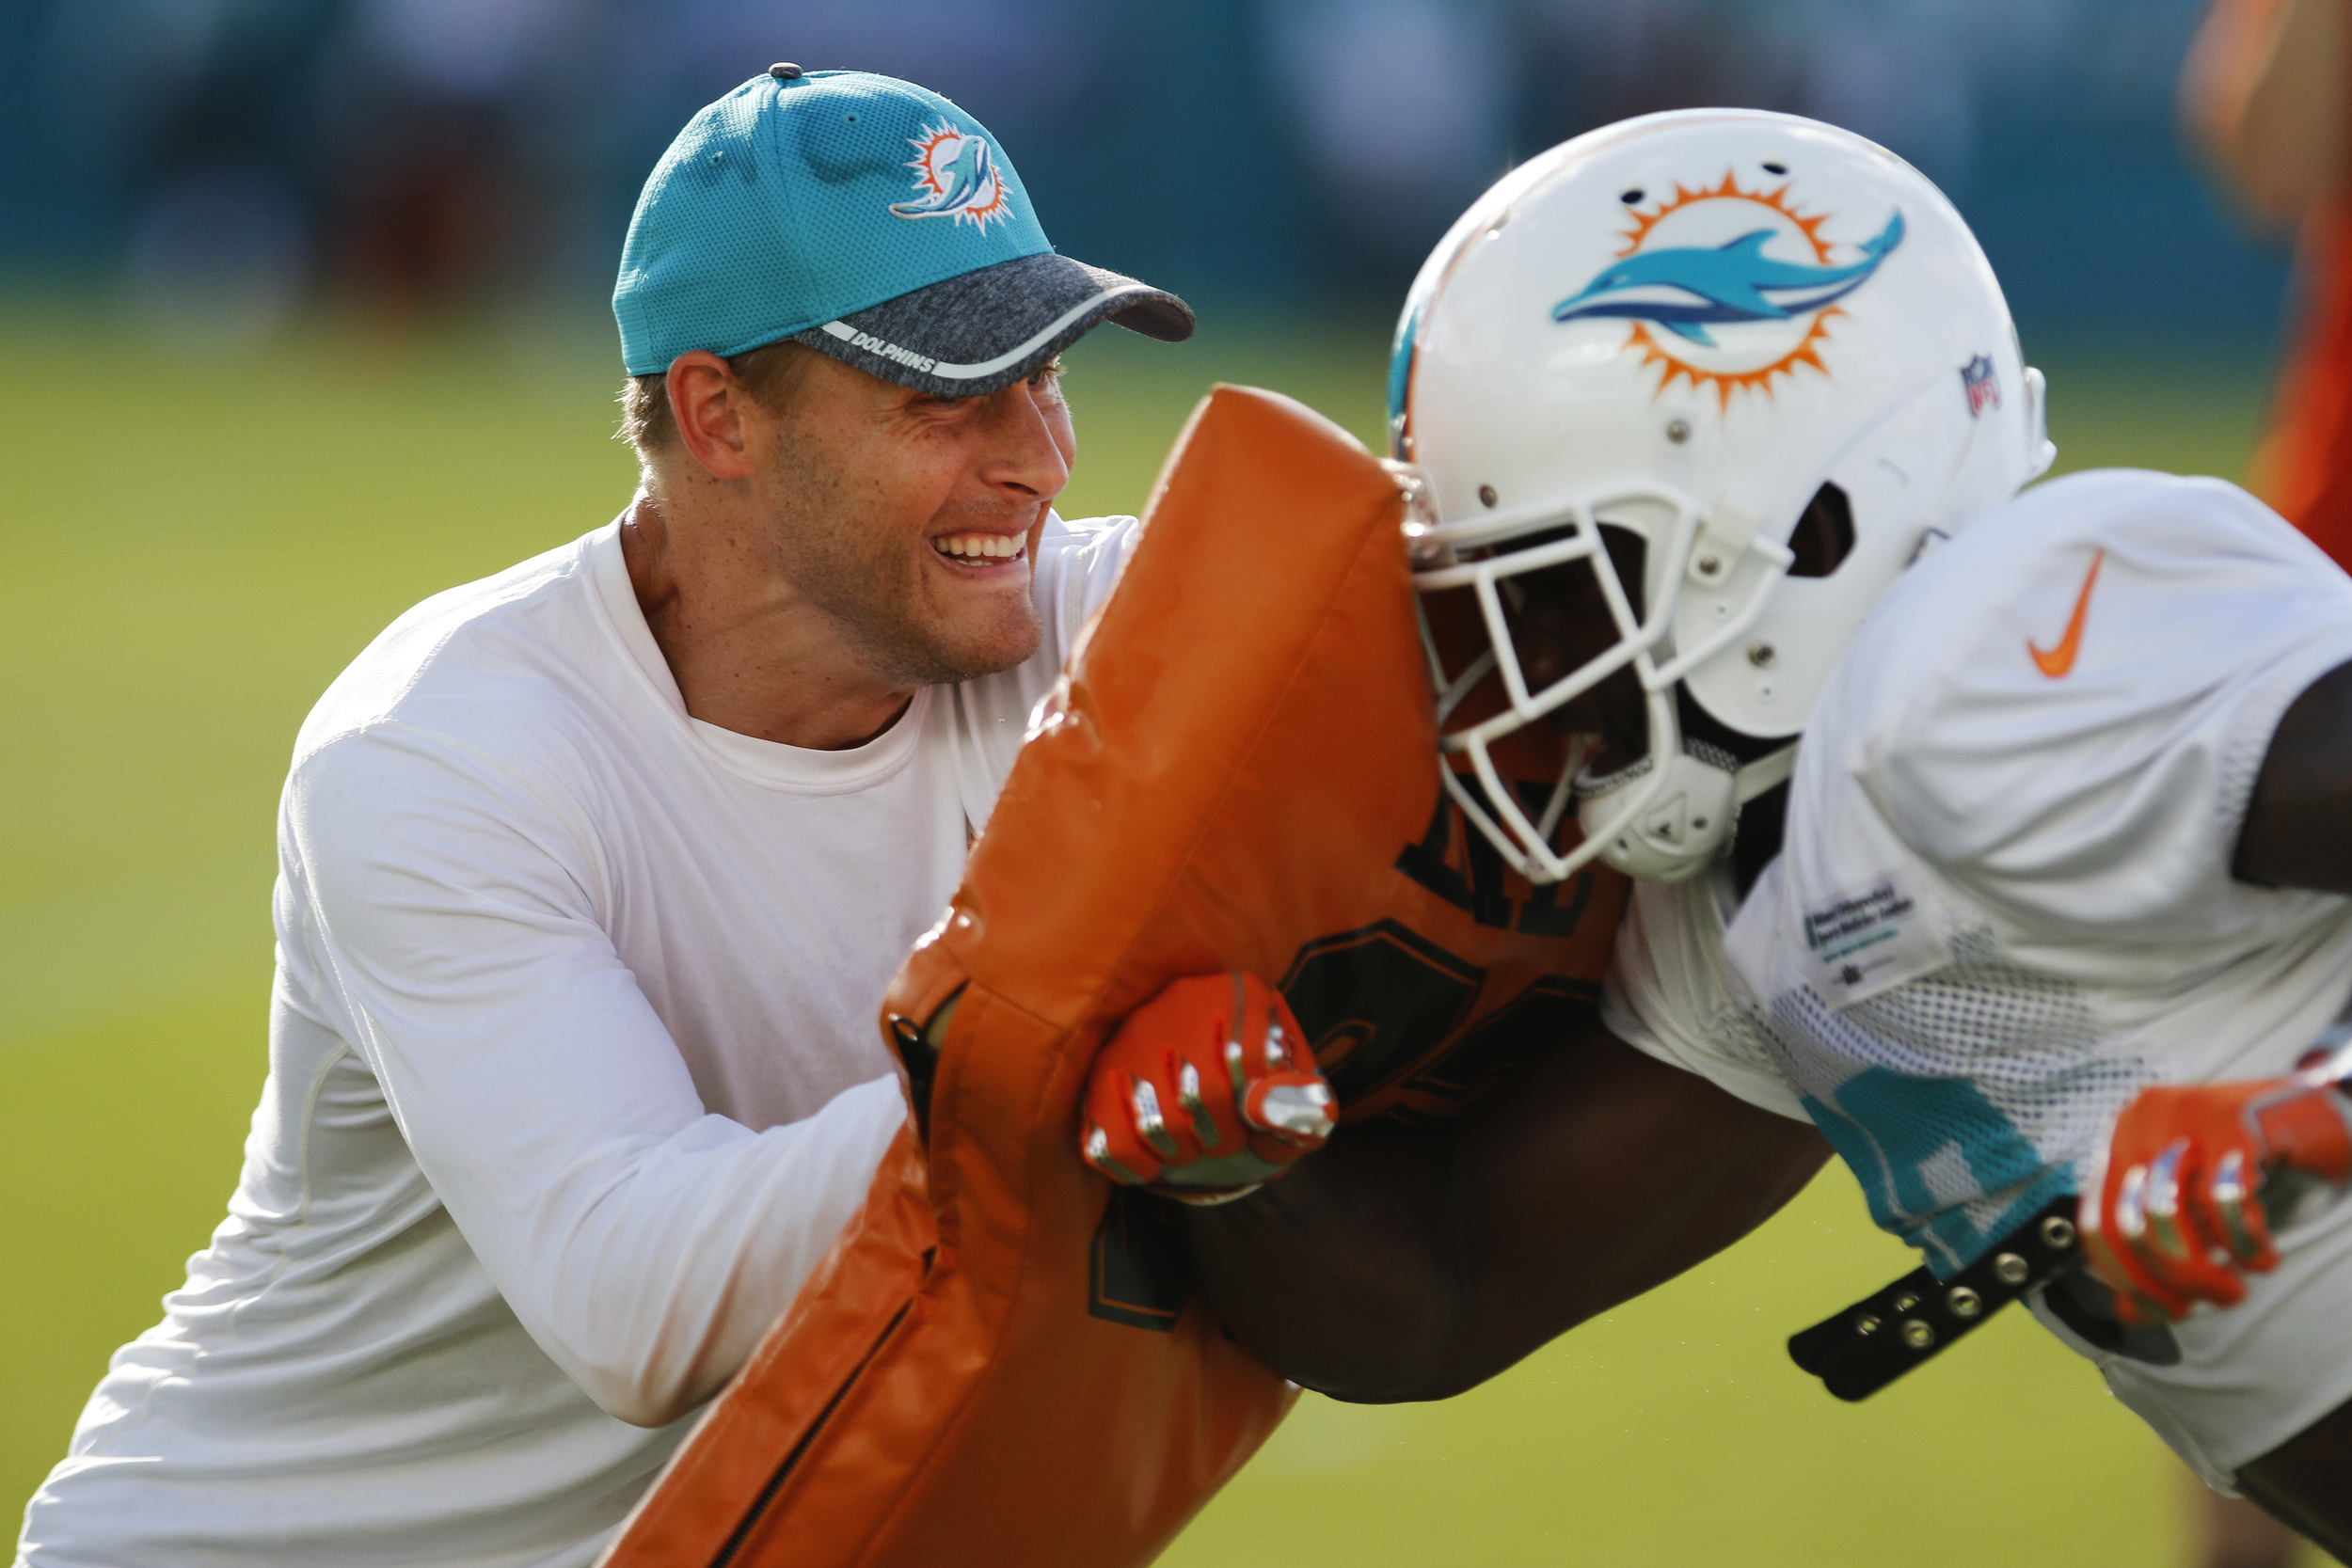 Assistant wide receivers coach Ben Johnson goes through drills during day three of the Miami Dolphins training camp held at the Dolphins Training Facility on Sunday, July 31, 2016.